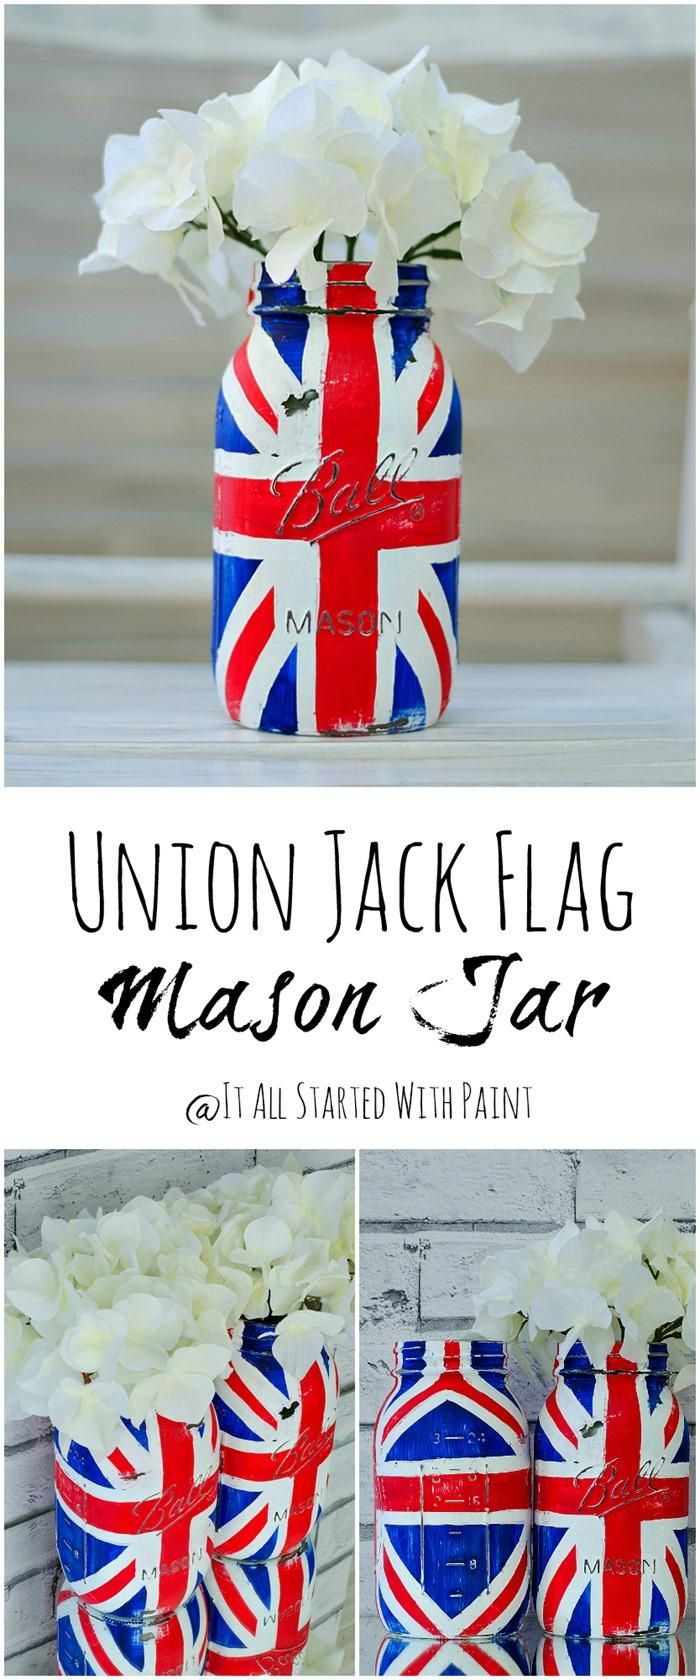 DIY Union Jack Flag Mason Jar Painted Distressed